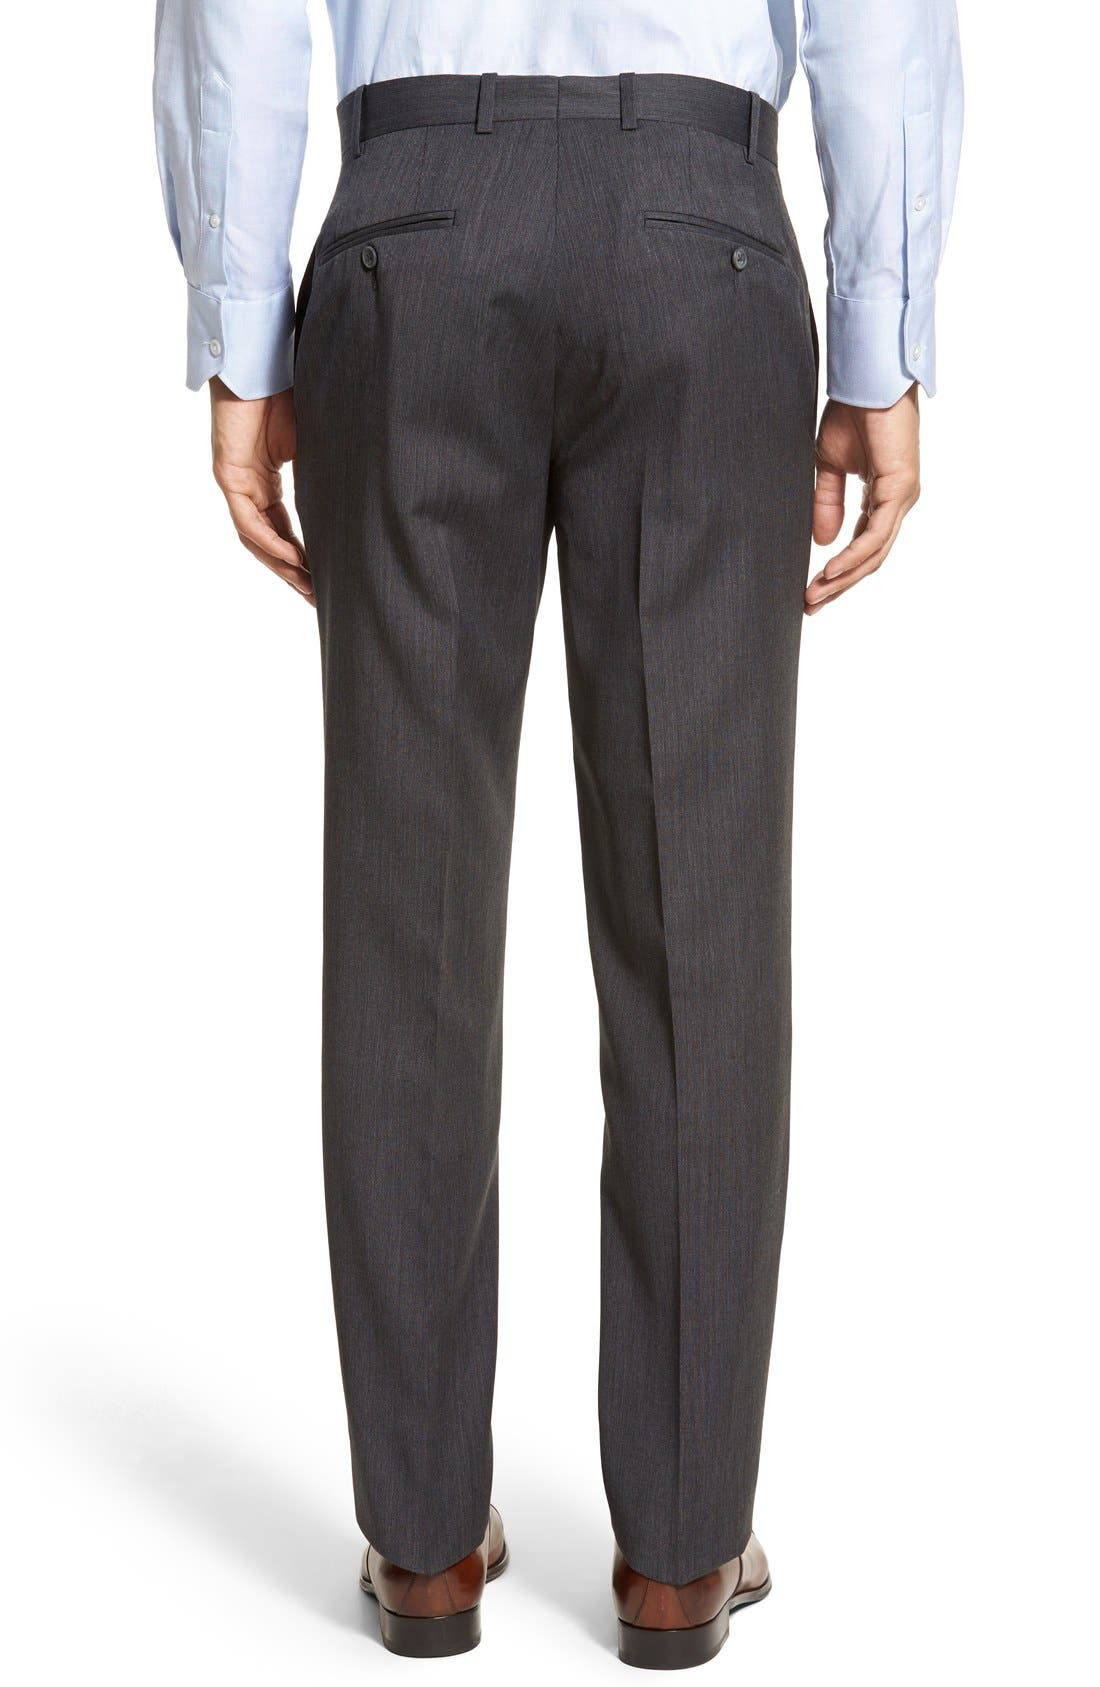 Torino Flat Front Solid Wool Trousers,                             Alternate thumbnail 4, color,                             020